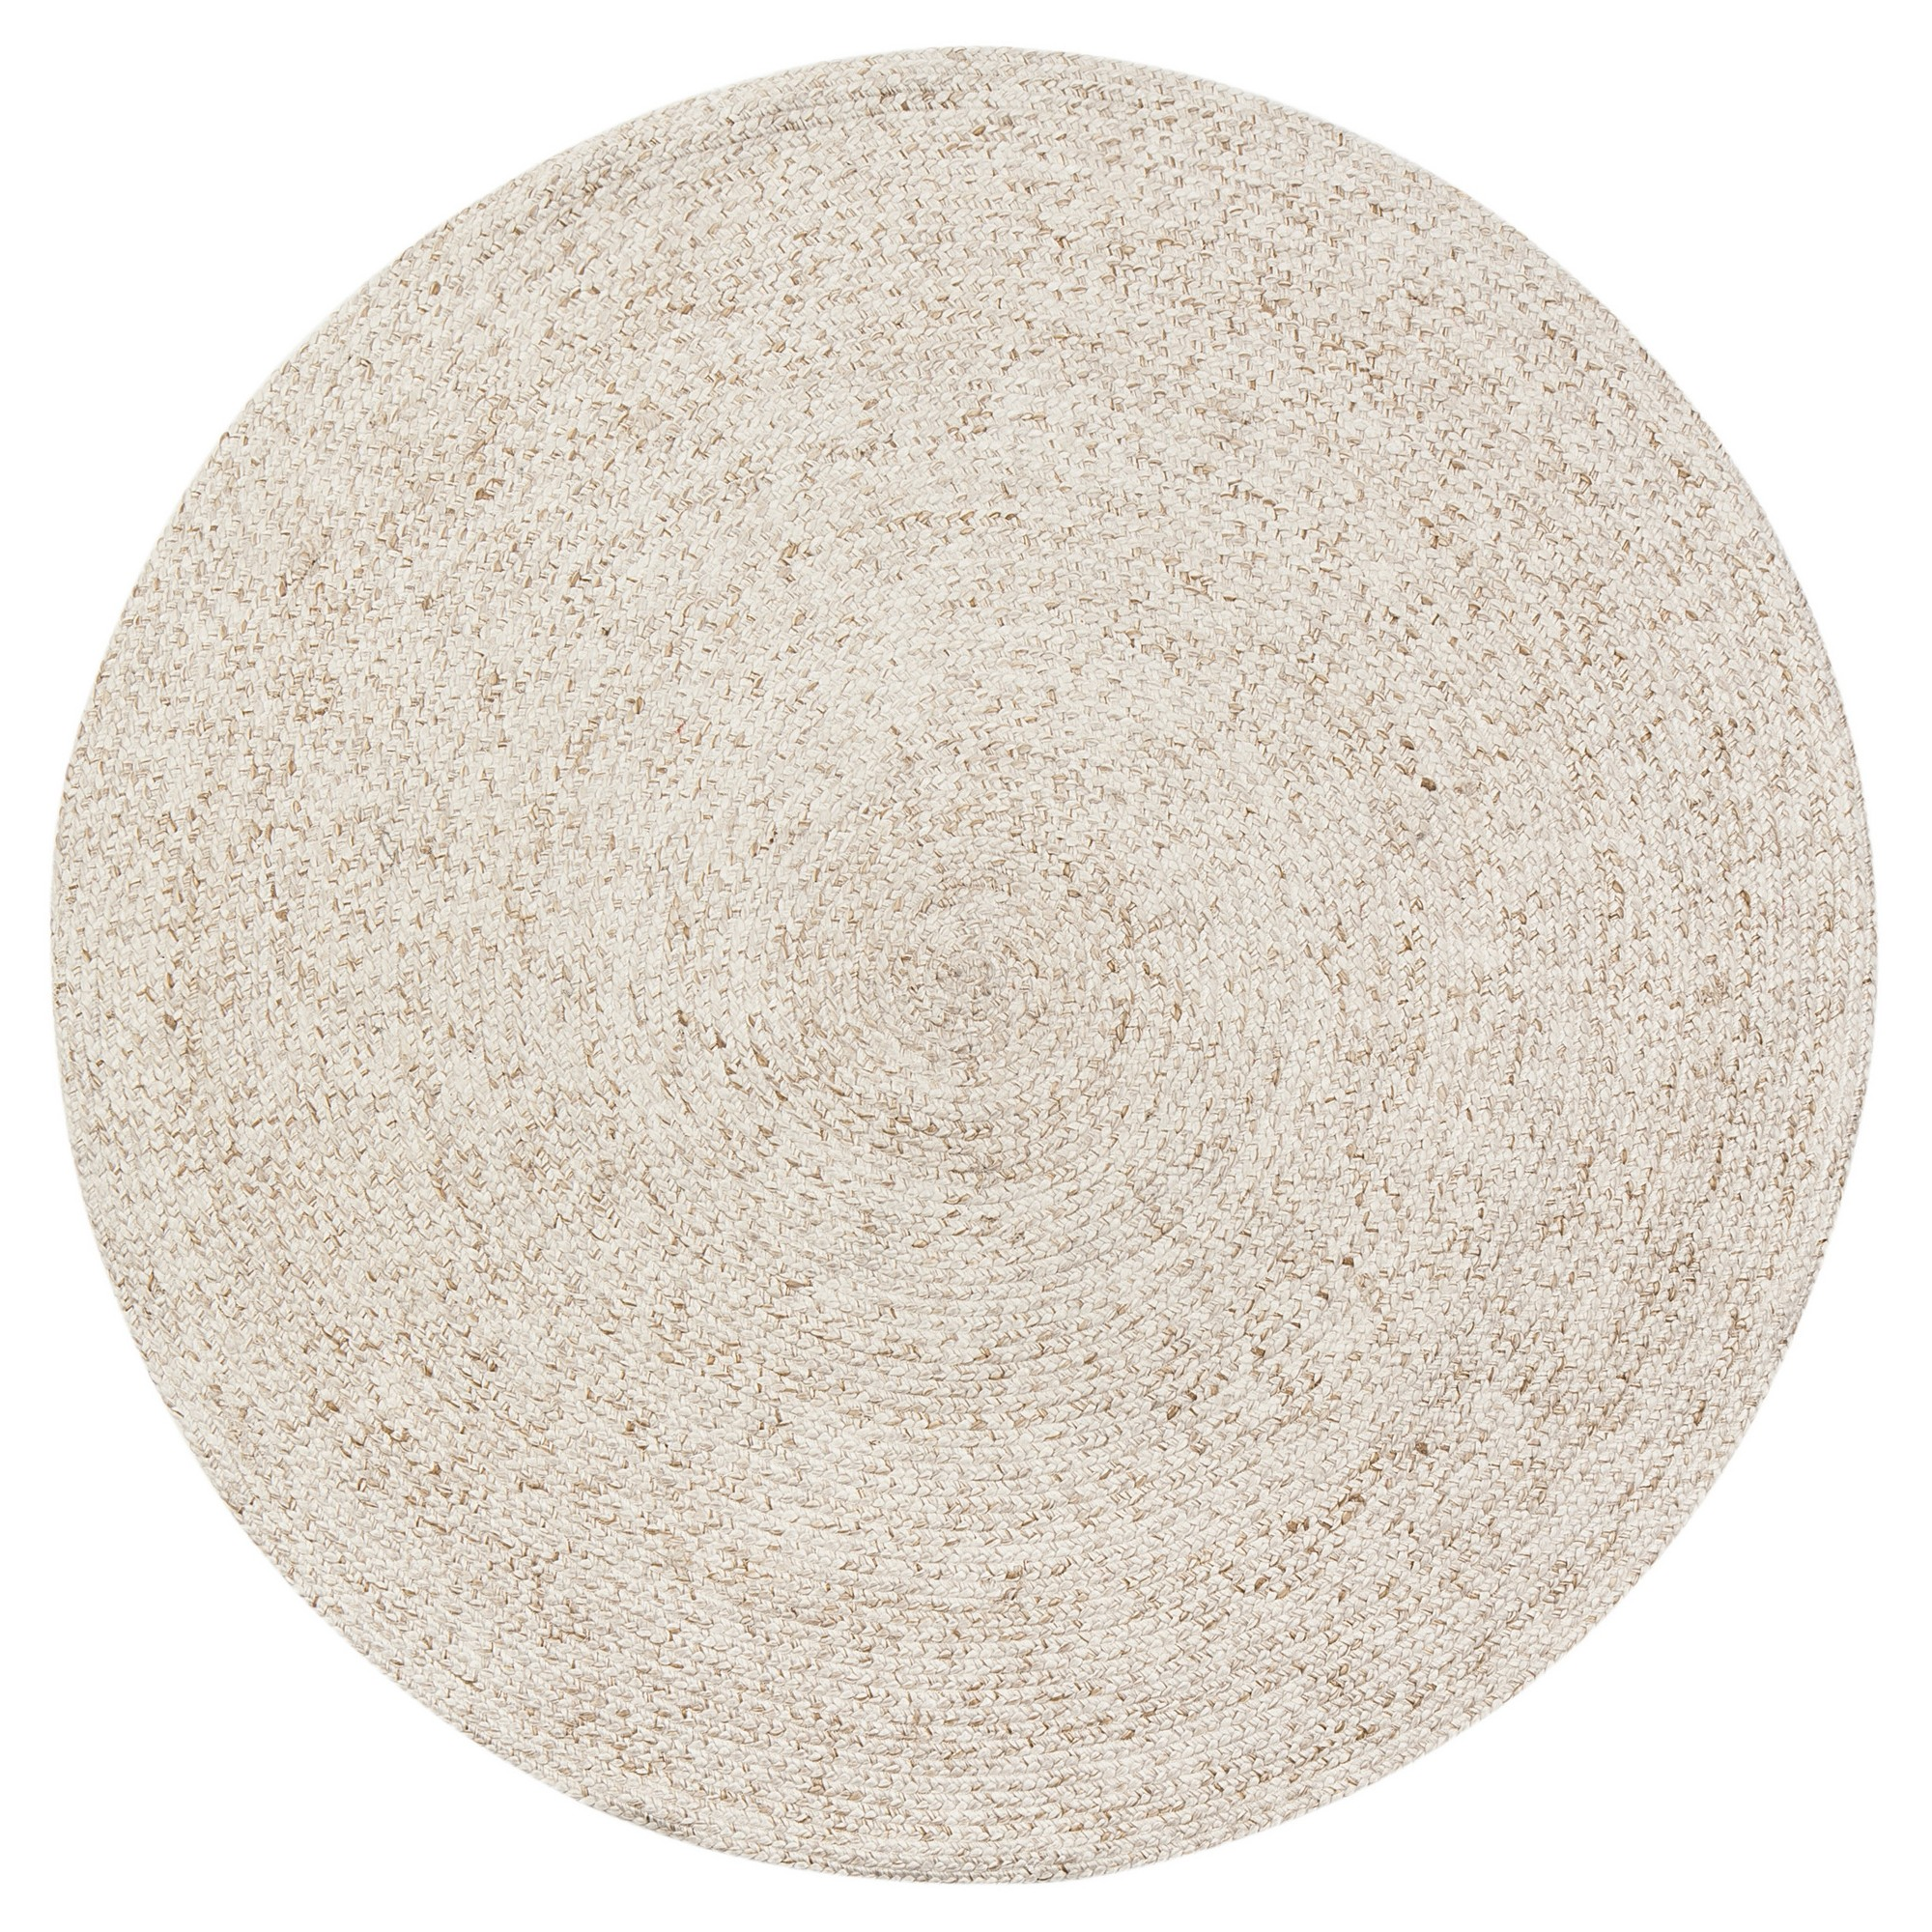 Light Cream Solid Braided Round Area Rug 8 Anji Mountain Adult